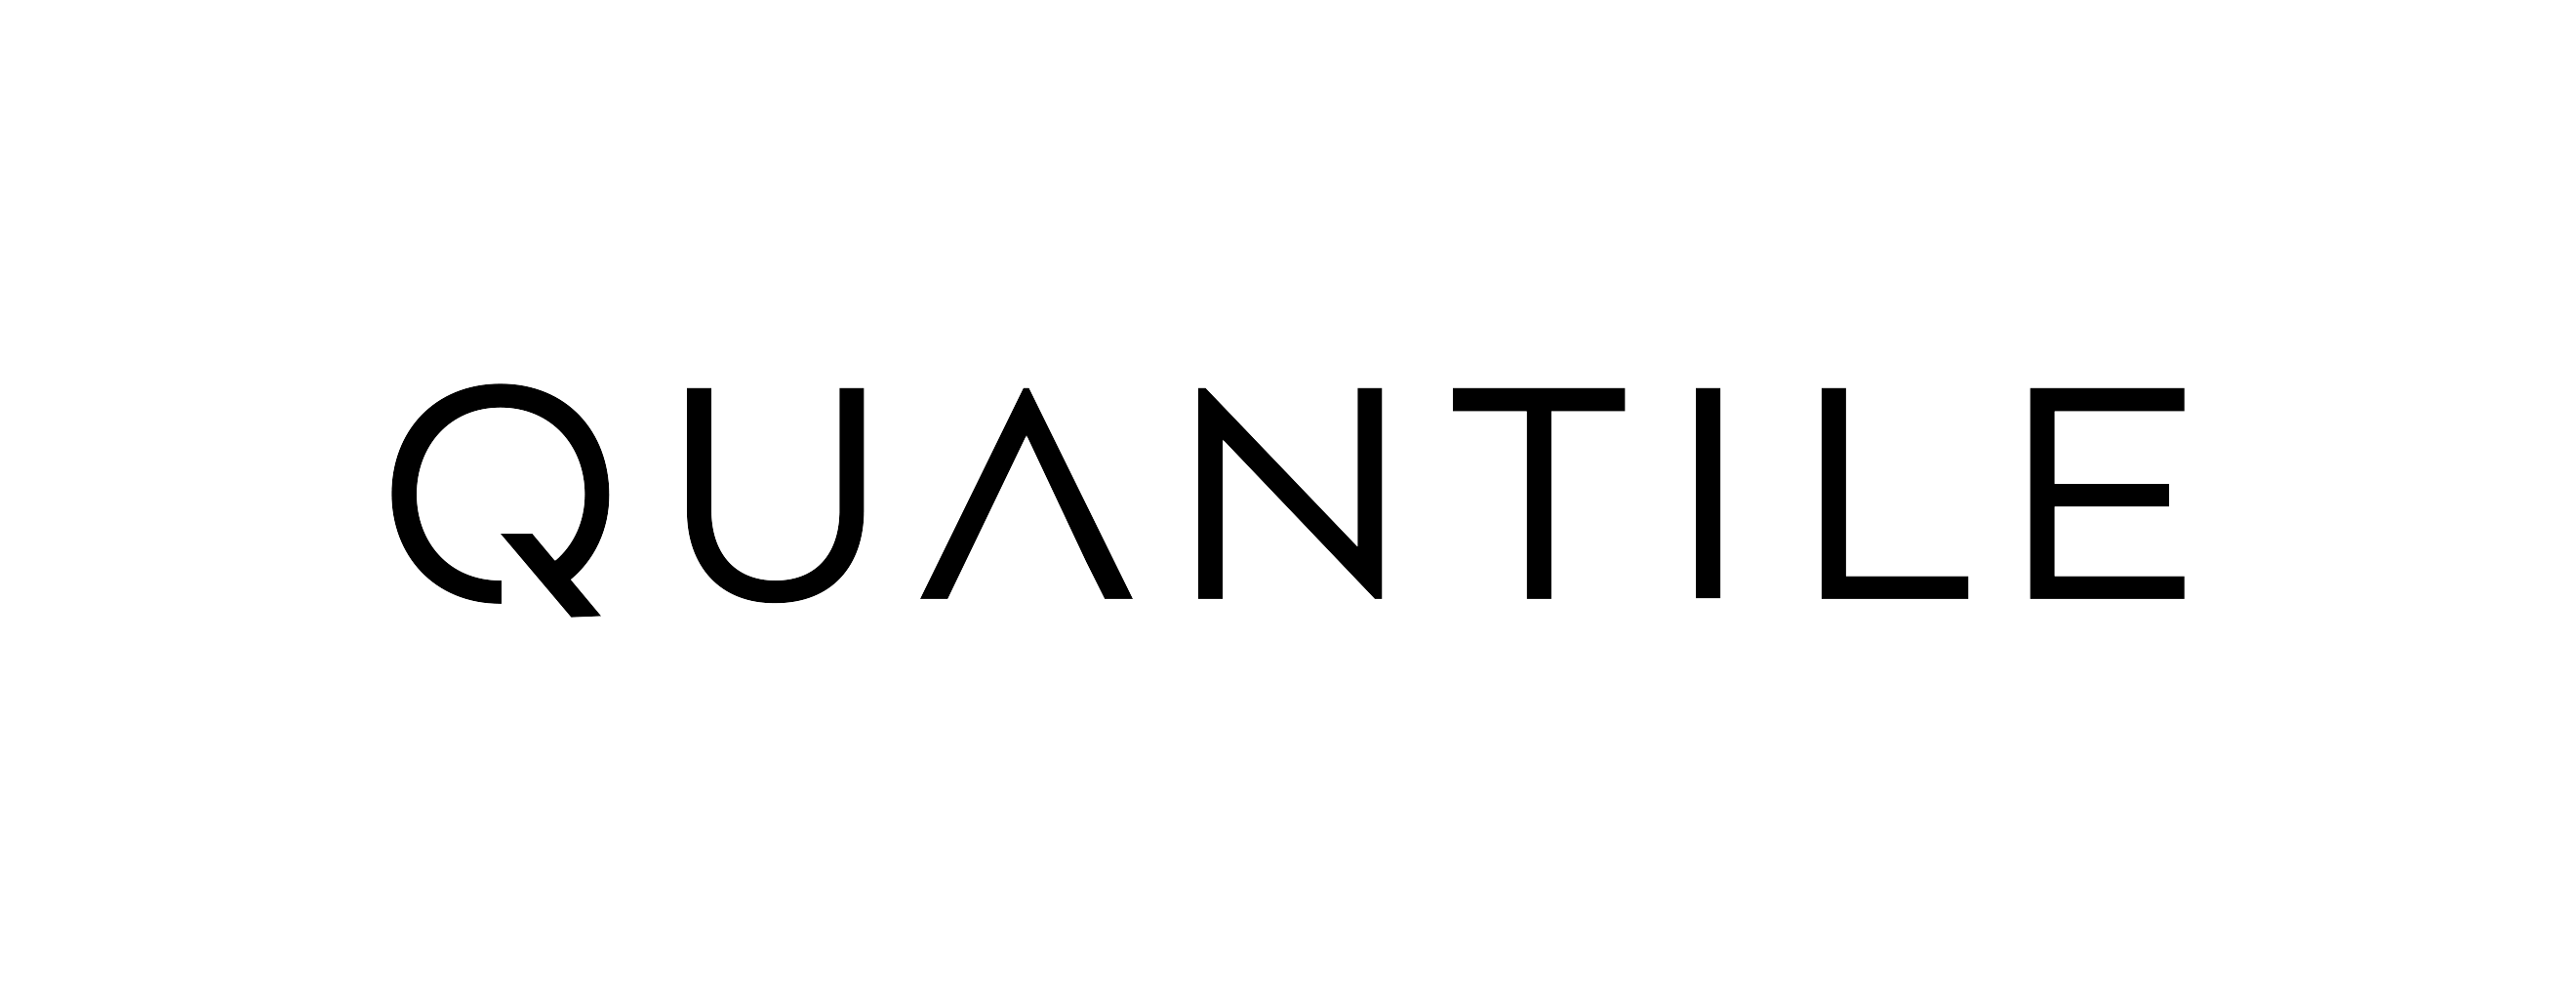 Quantile Technologies Secures $51 Million Growth Investment from Spectrum Equity